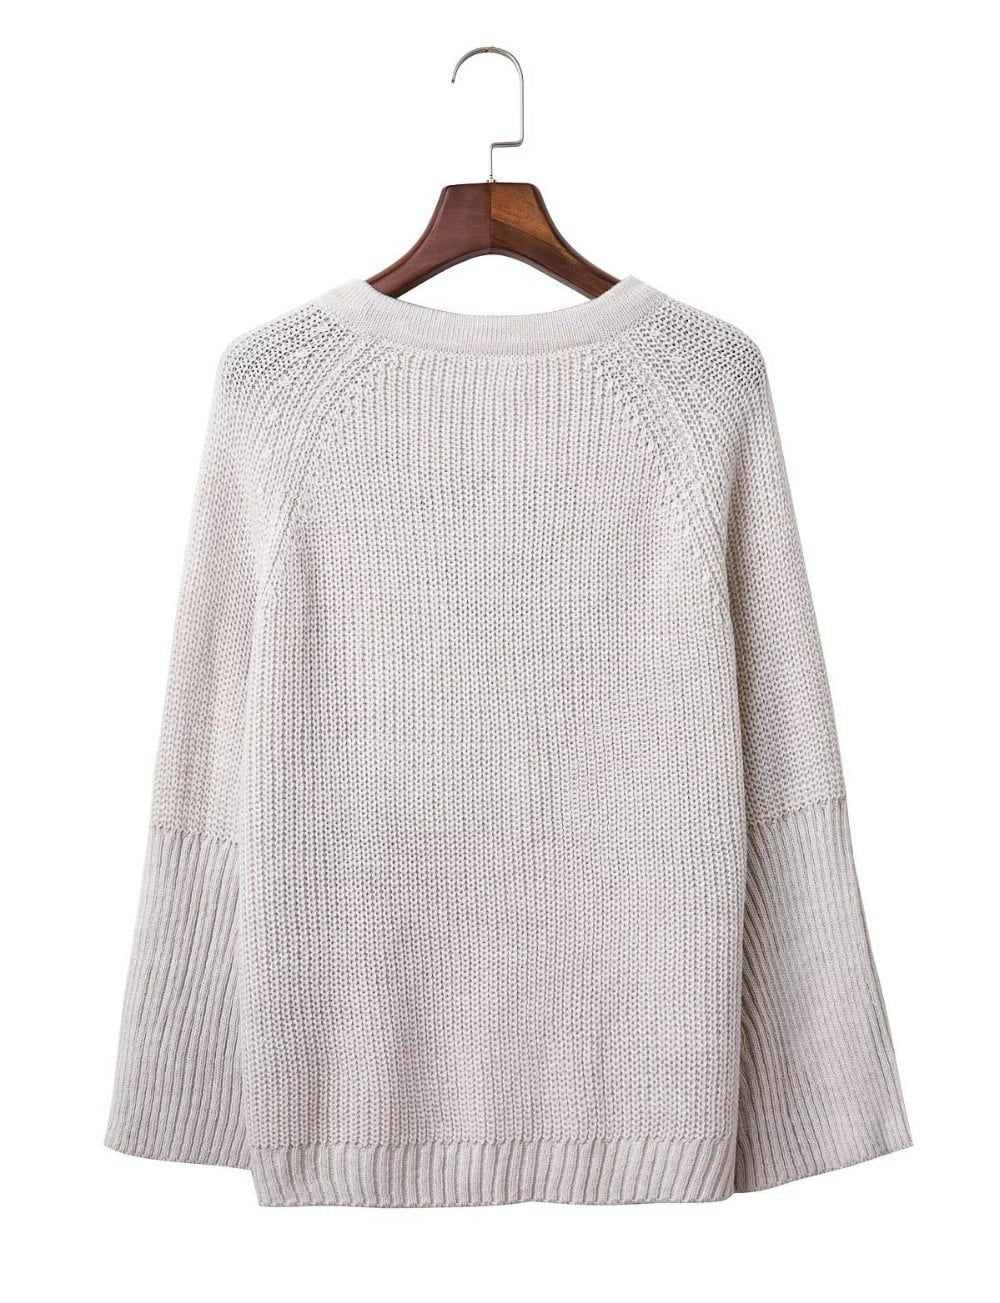 Women Sweater Lace up V Neck Pullover Jumpers Casual Loose knitwear-SWEATERS + CARDIGANS-SheSimplyShops